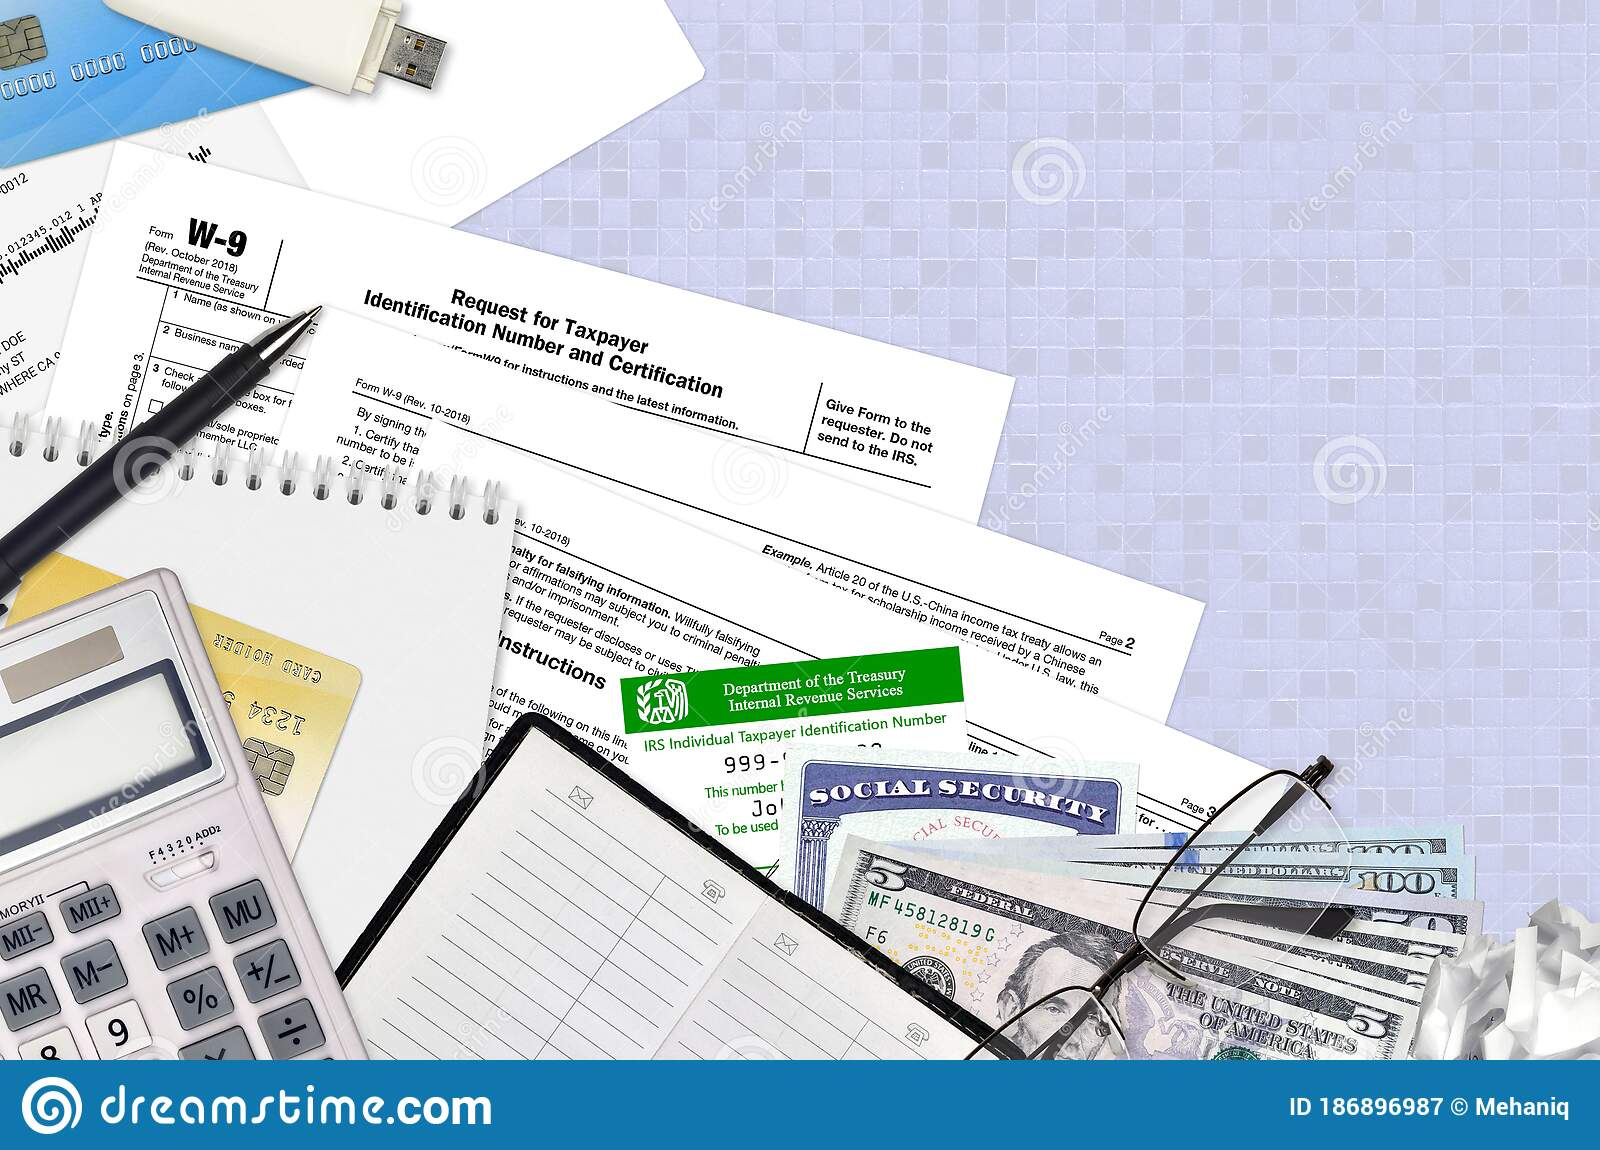 Irs Form W-9 Request For Taxpayer Identification Number And intended for 2021 W-9 Form